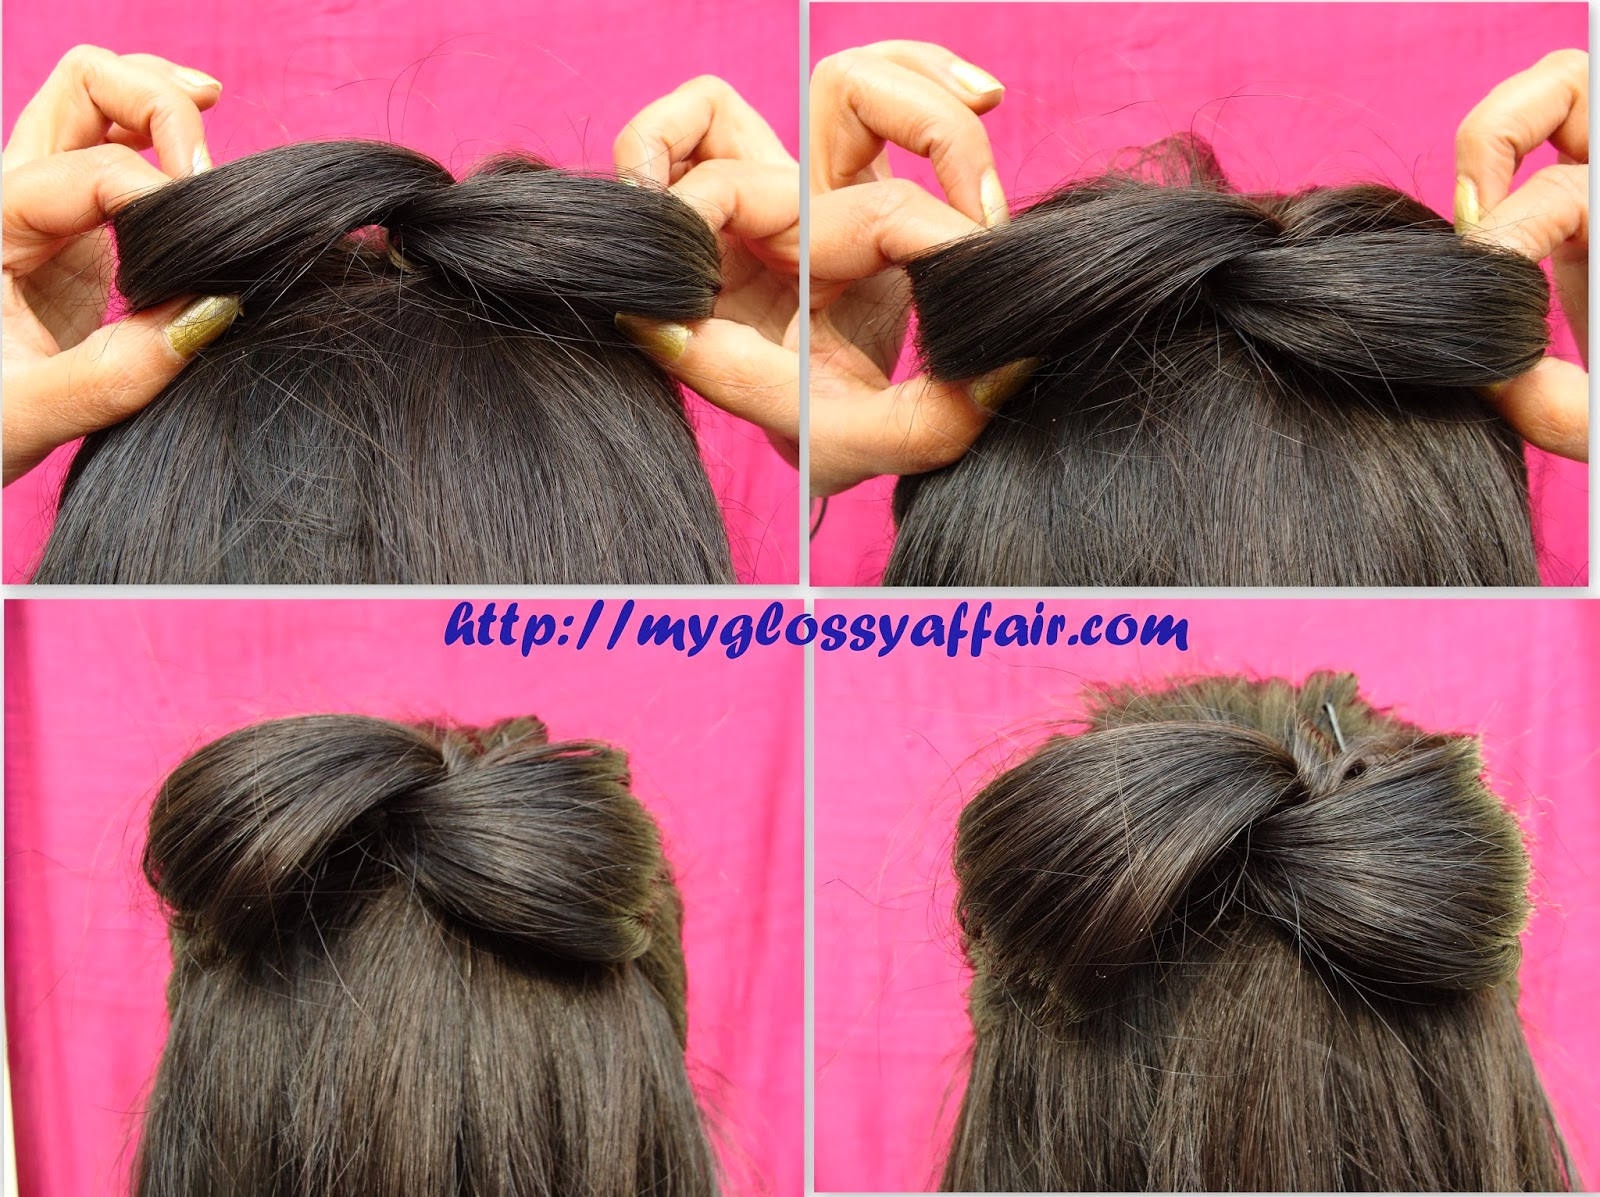 A Simple Bow Hairstyle for Medium/Long Hair